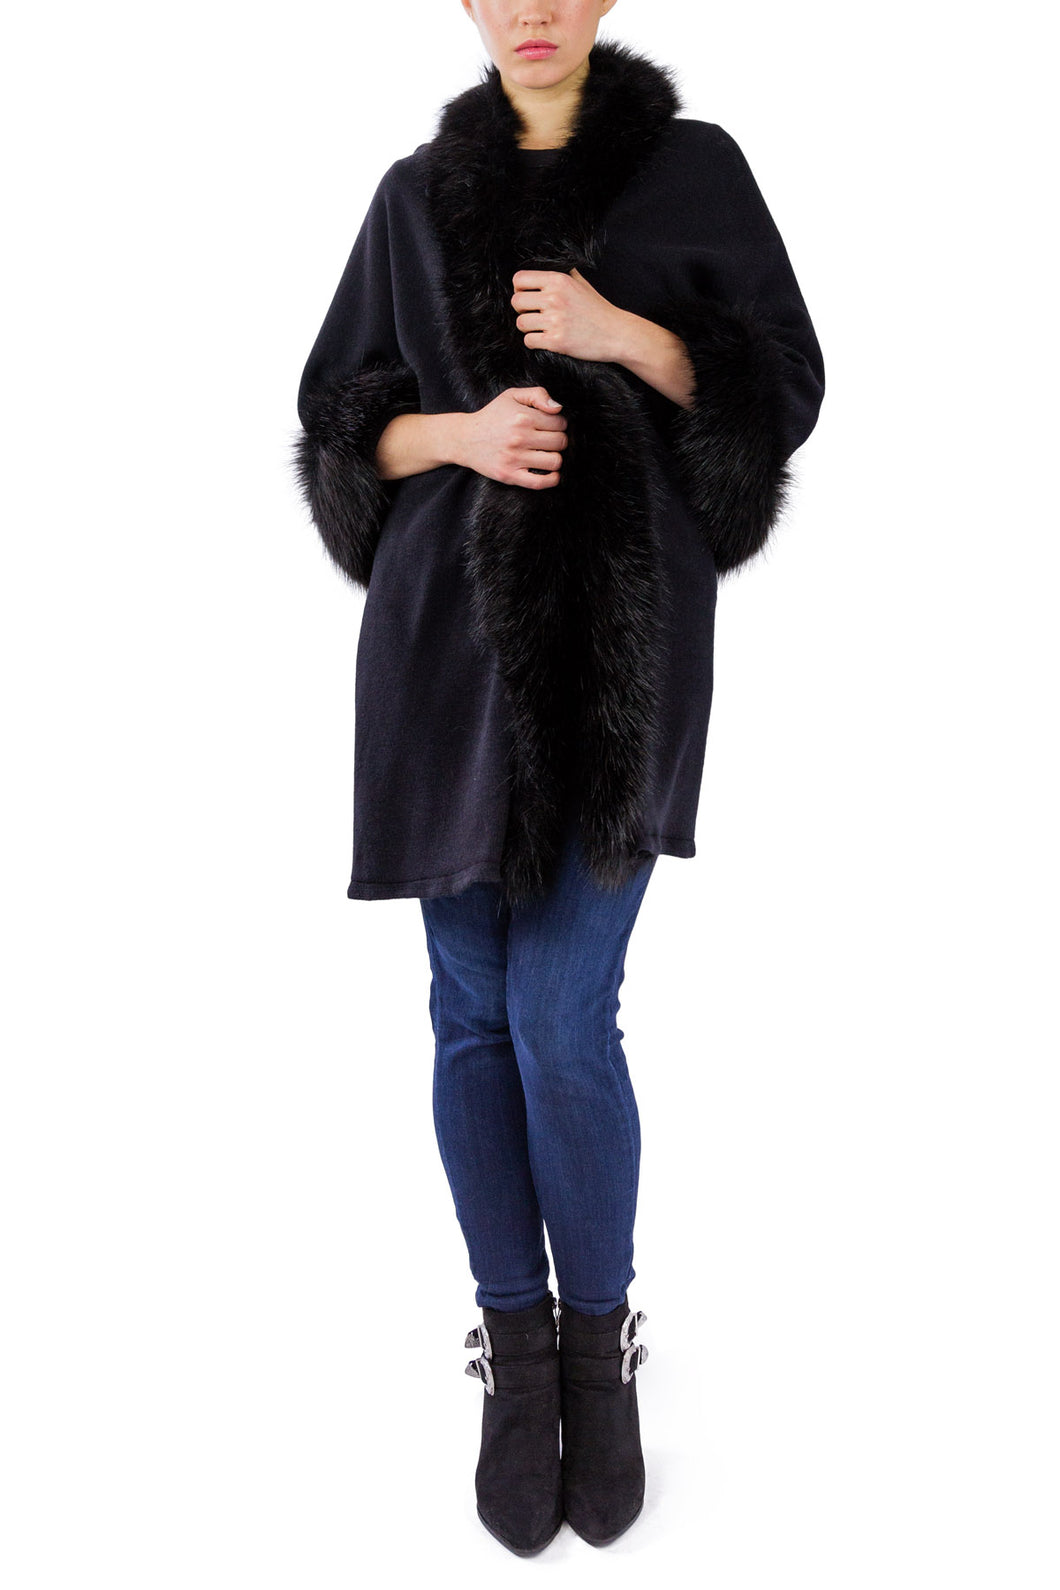 Faux Fur Border Ruana - Just Jamie